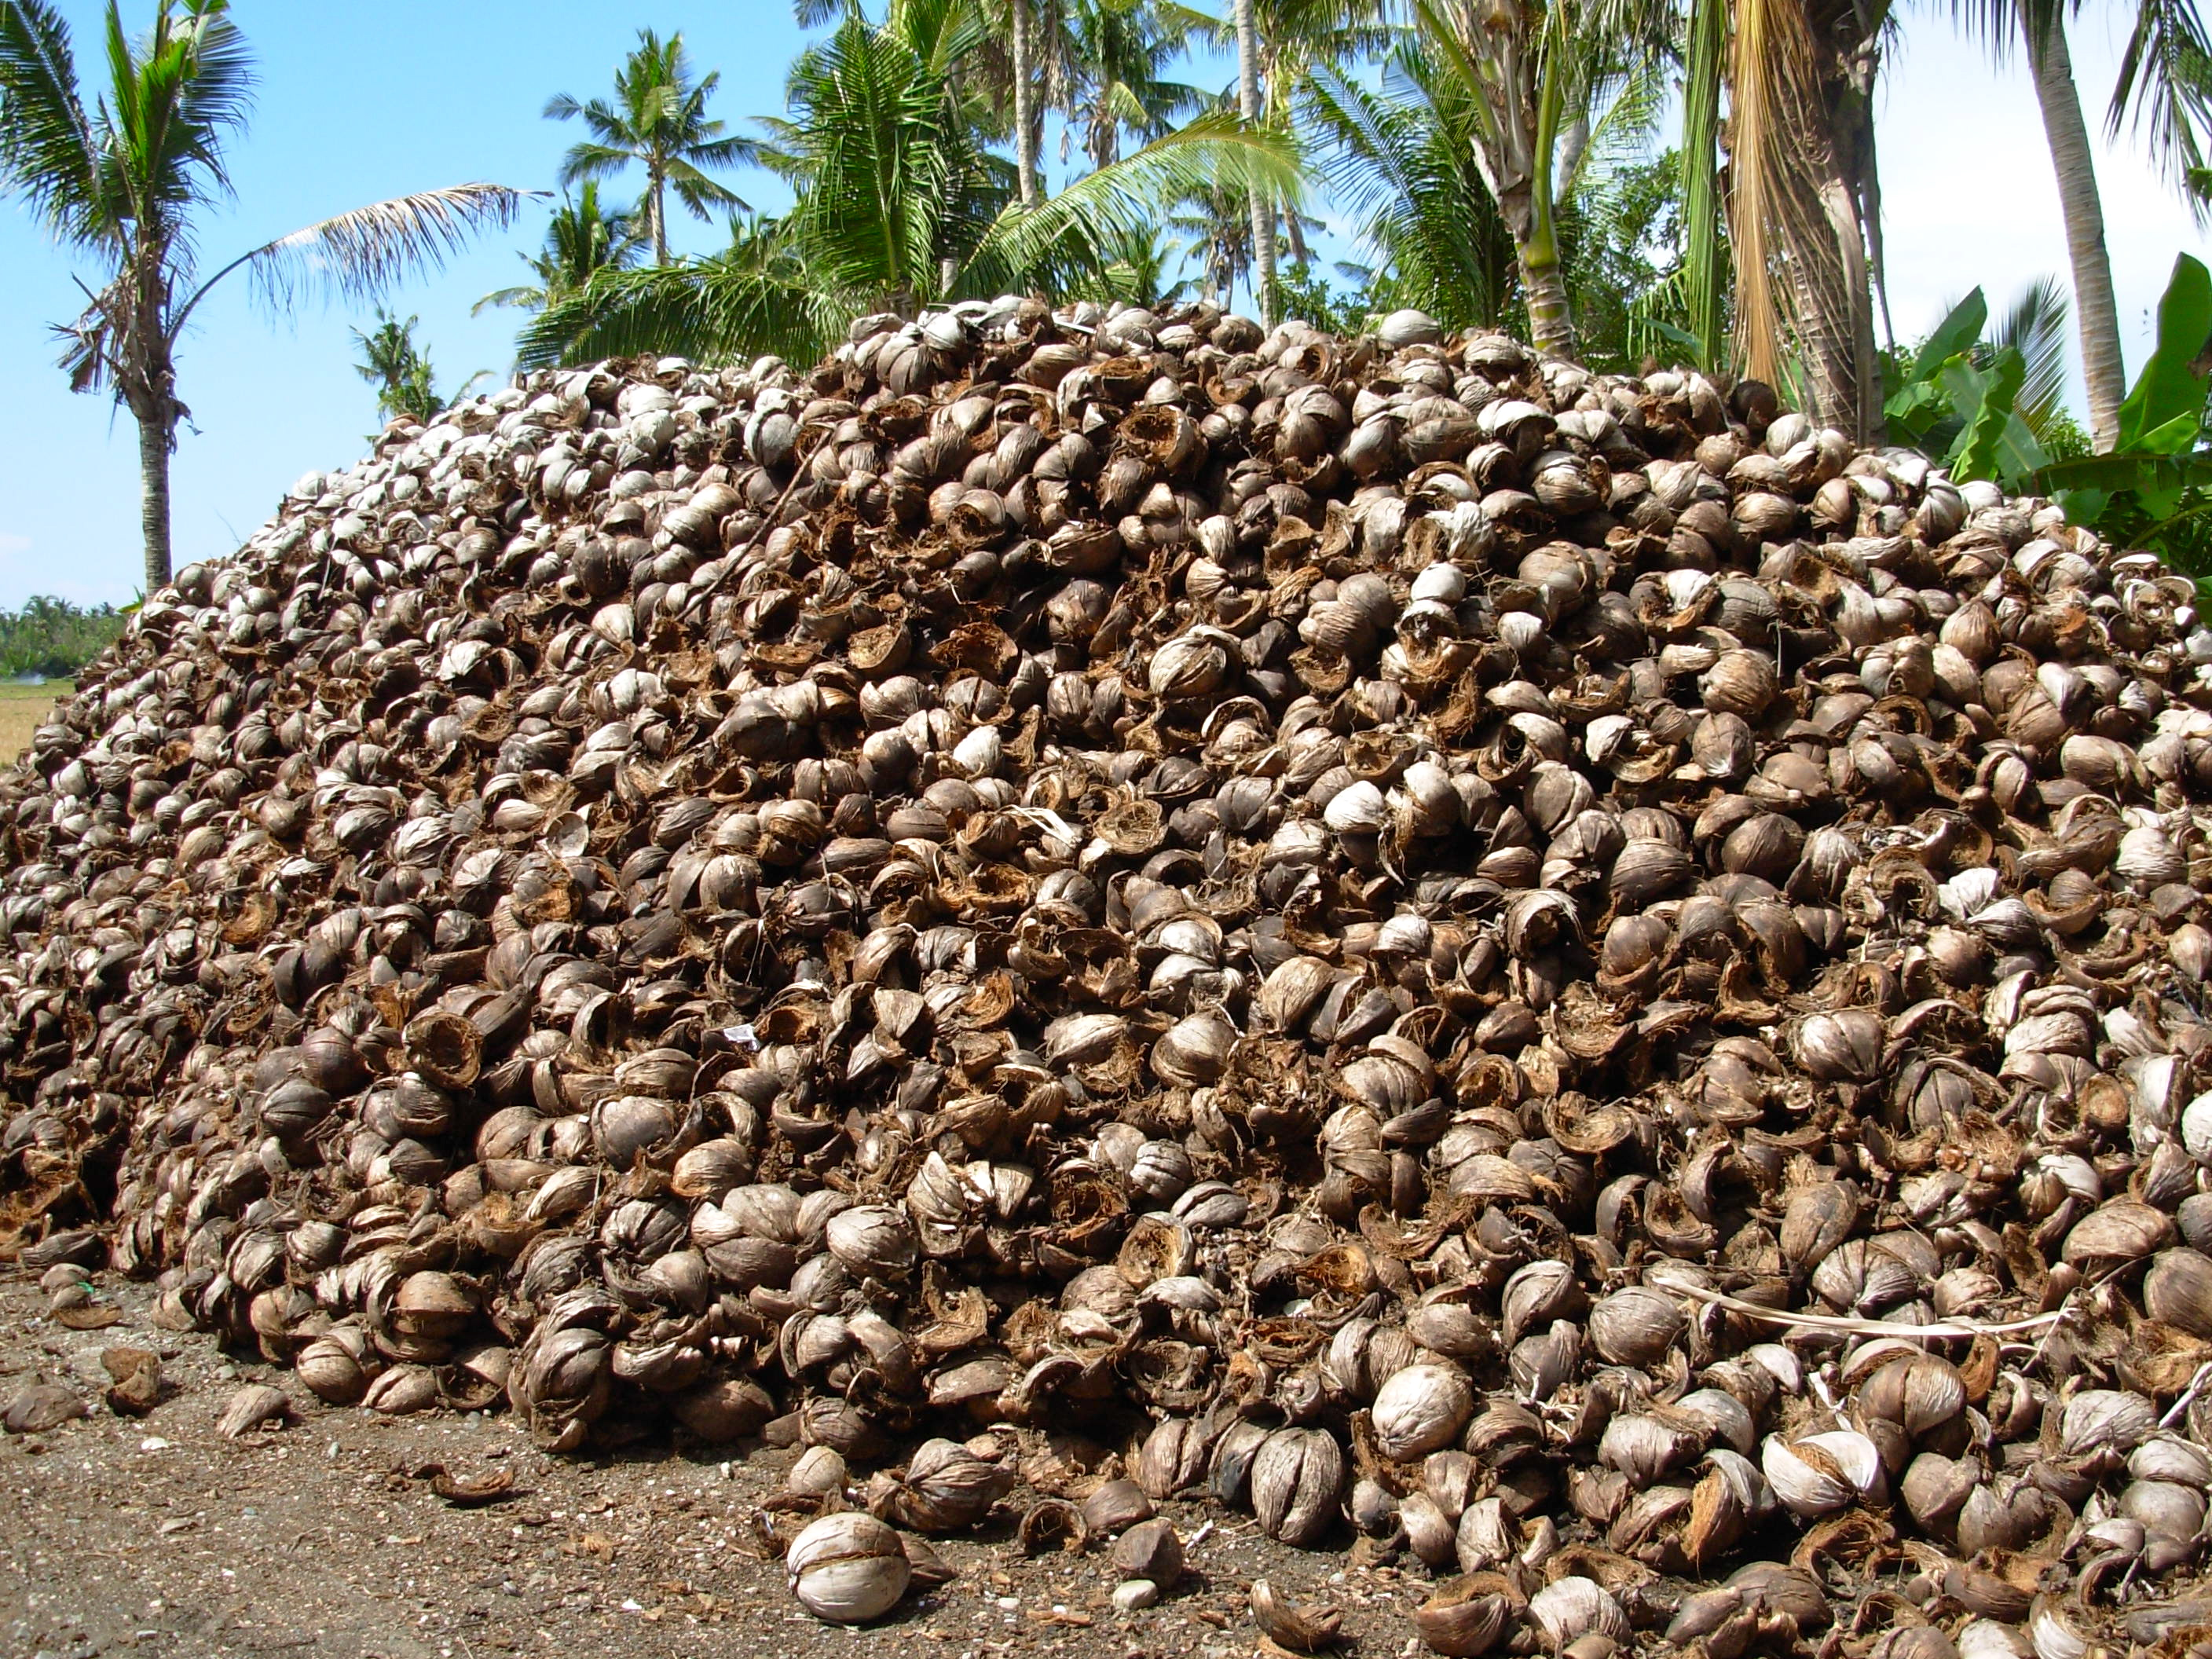 Company converts coconut husk fibers into materials for for Waste material products